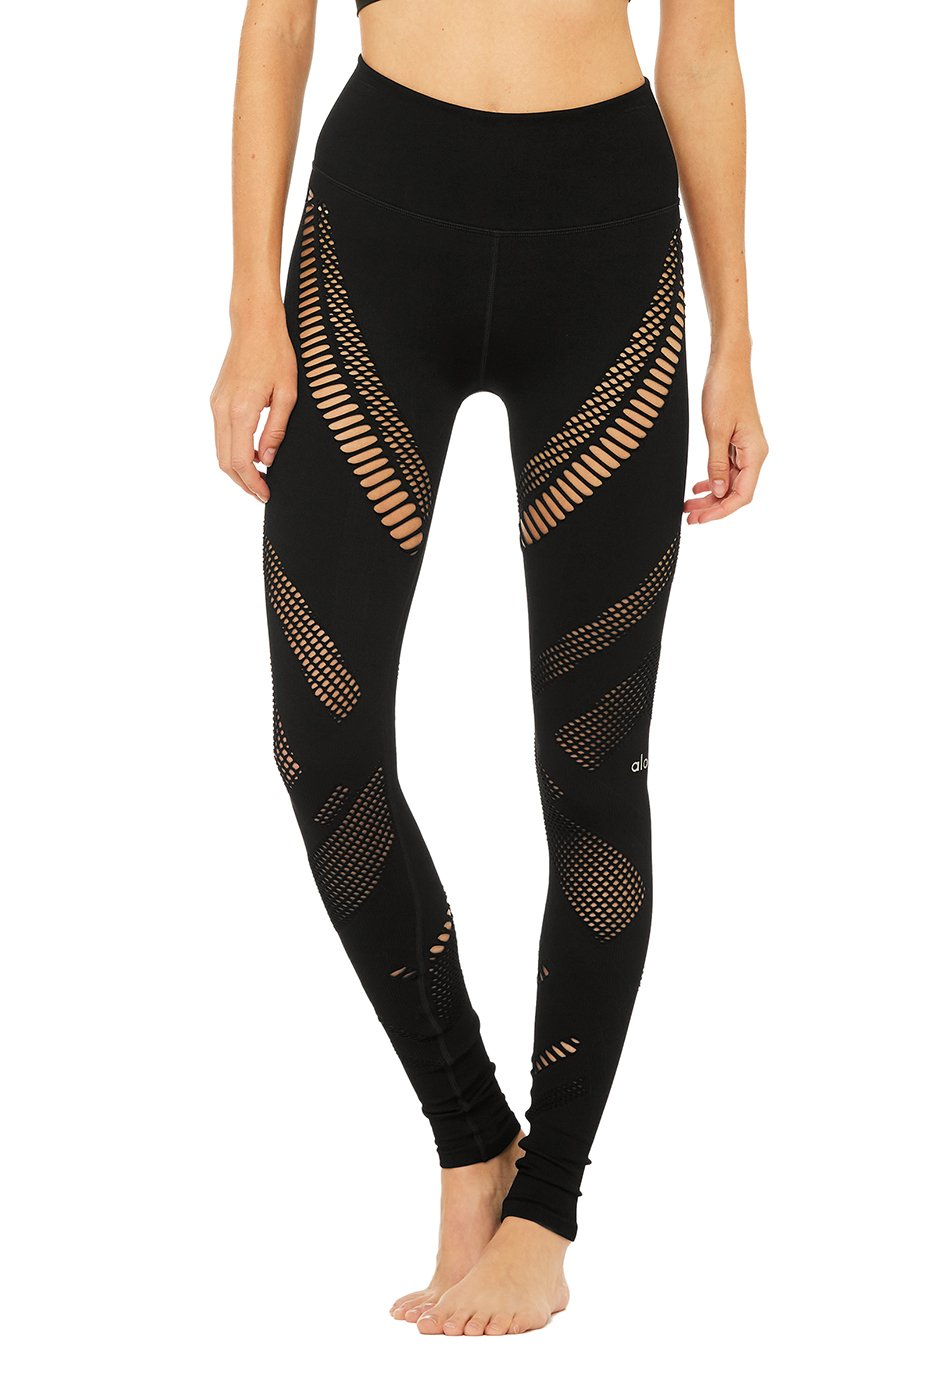 29f79c4533c60 Activewear Leggings | Quality, Comfort & Style | Get KITTED